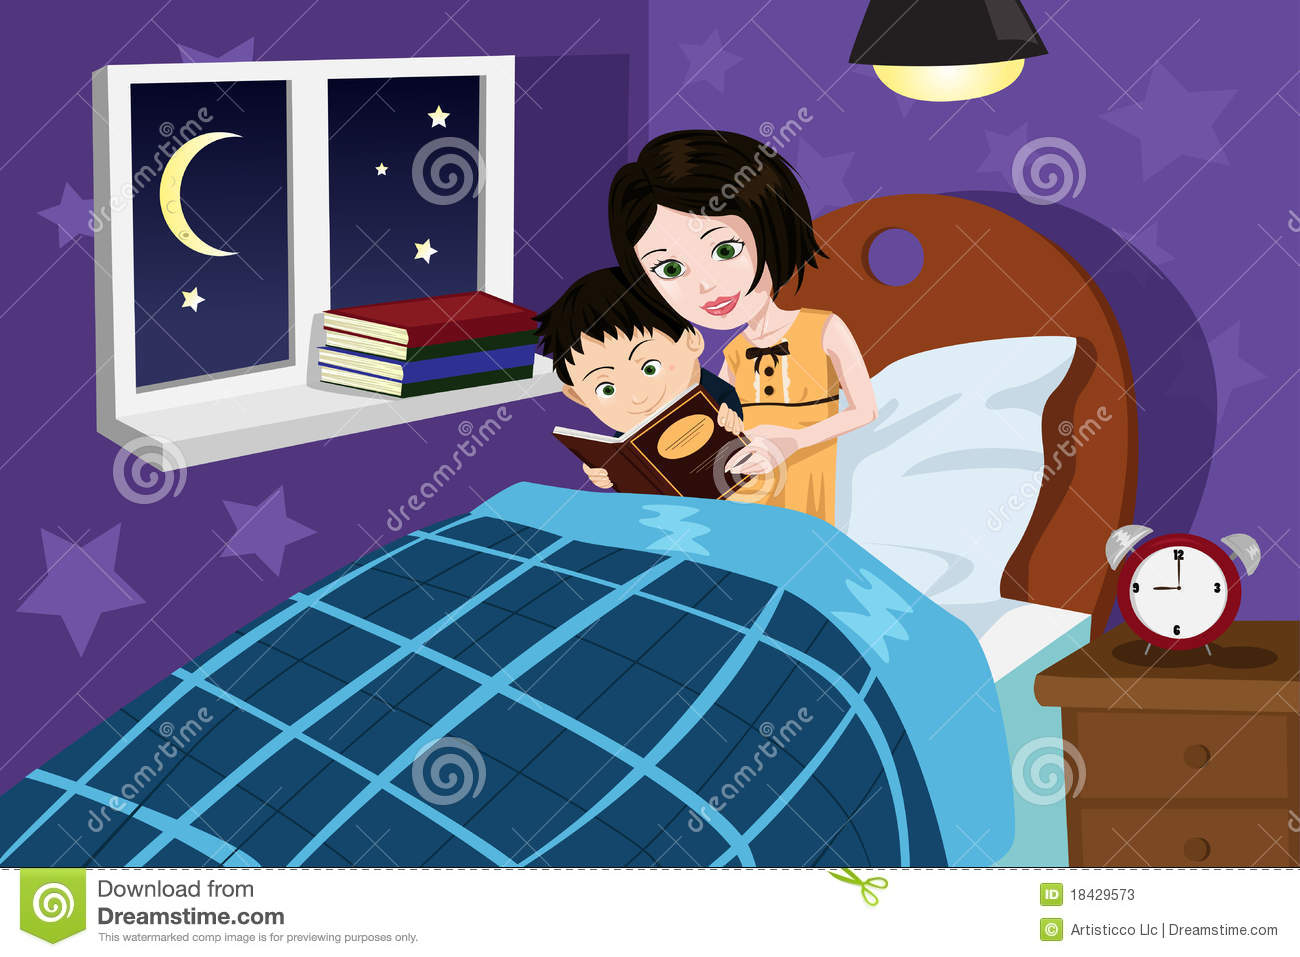 illustration of a mother reading bedtime story to her son.